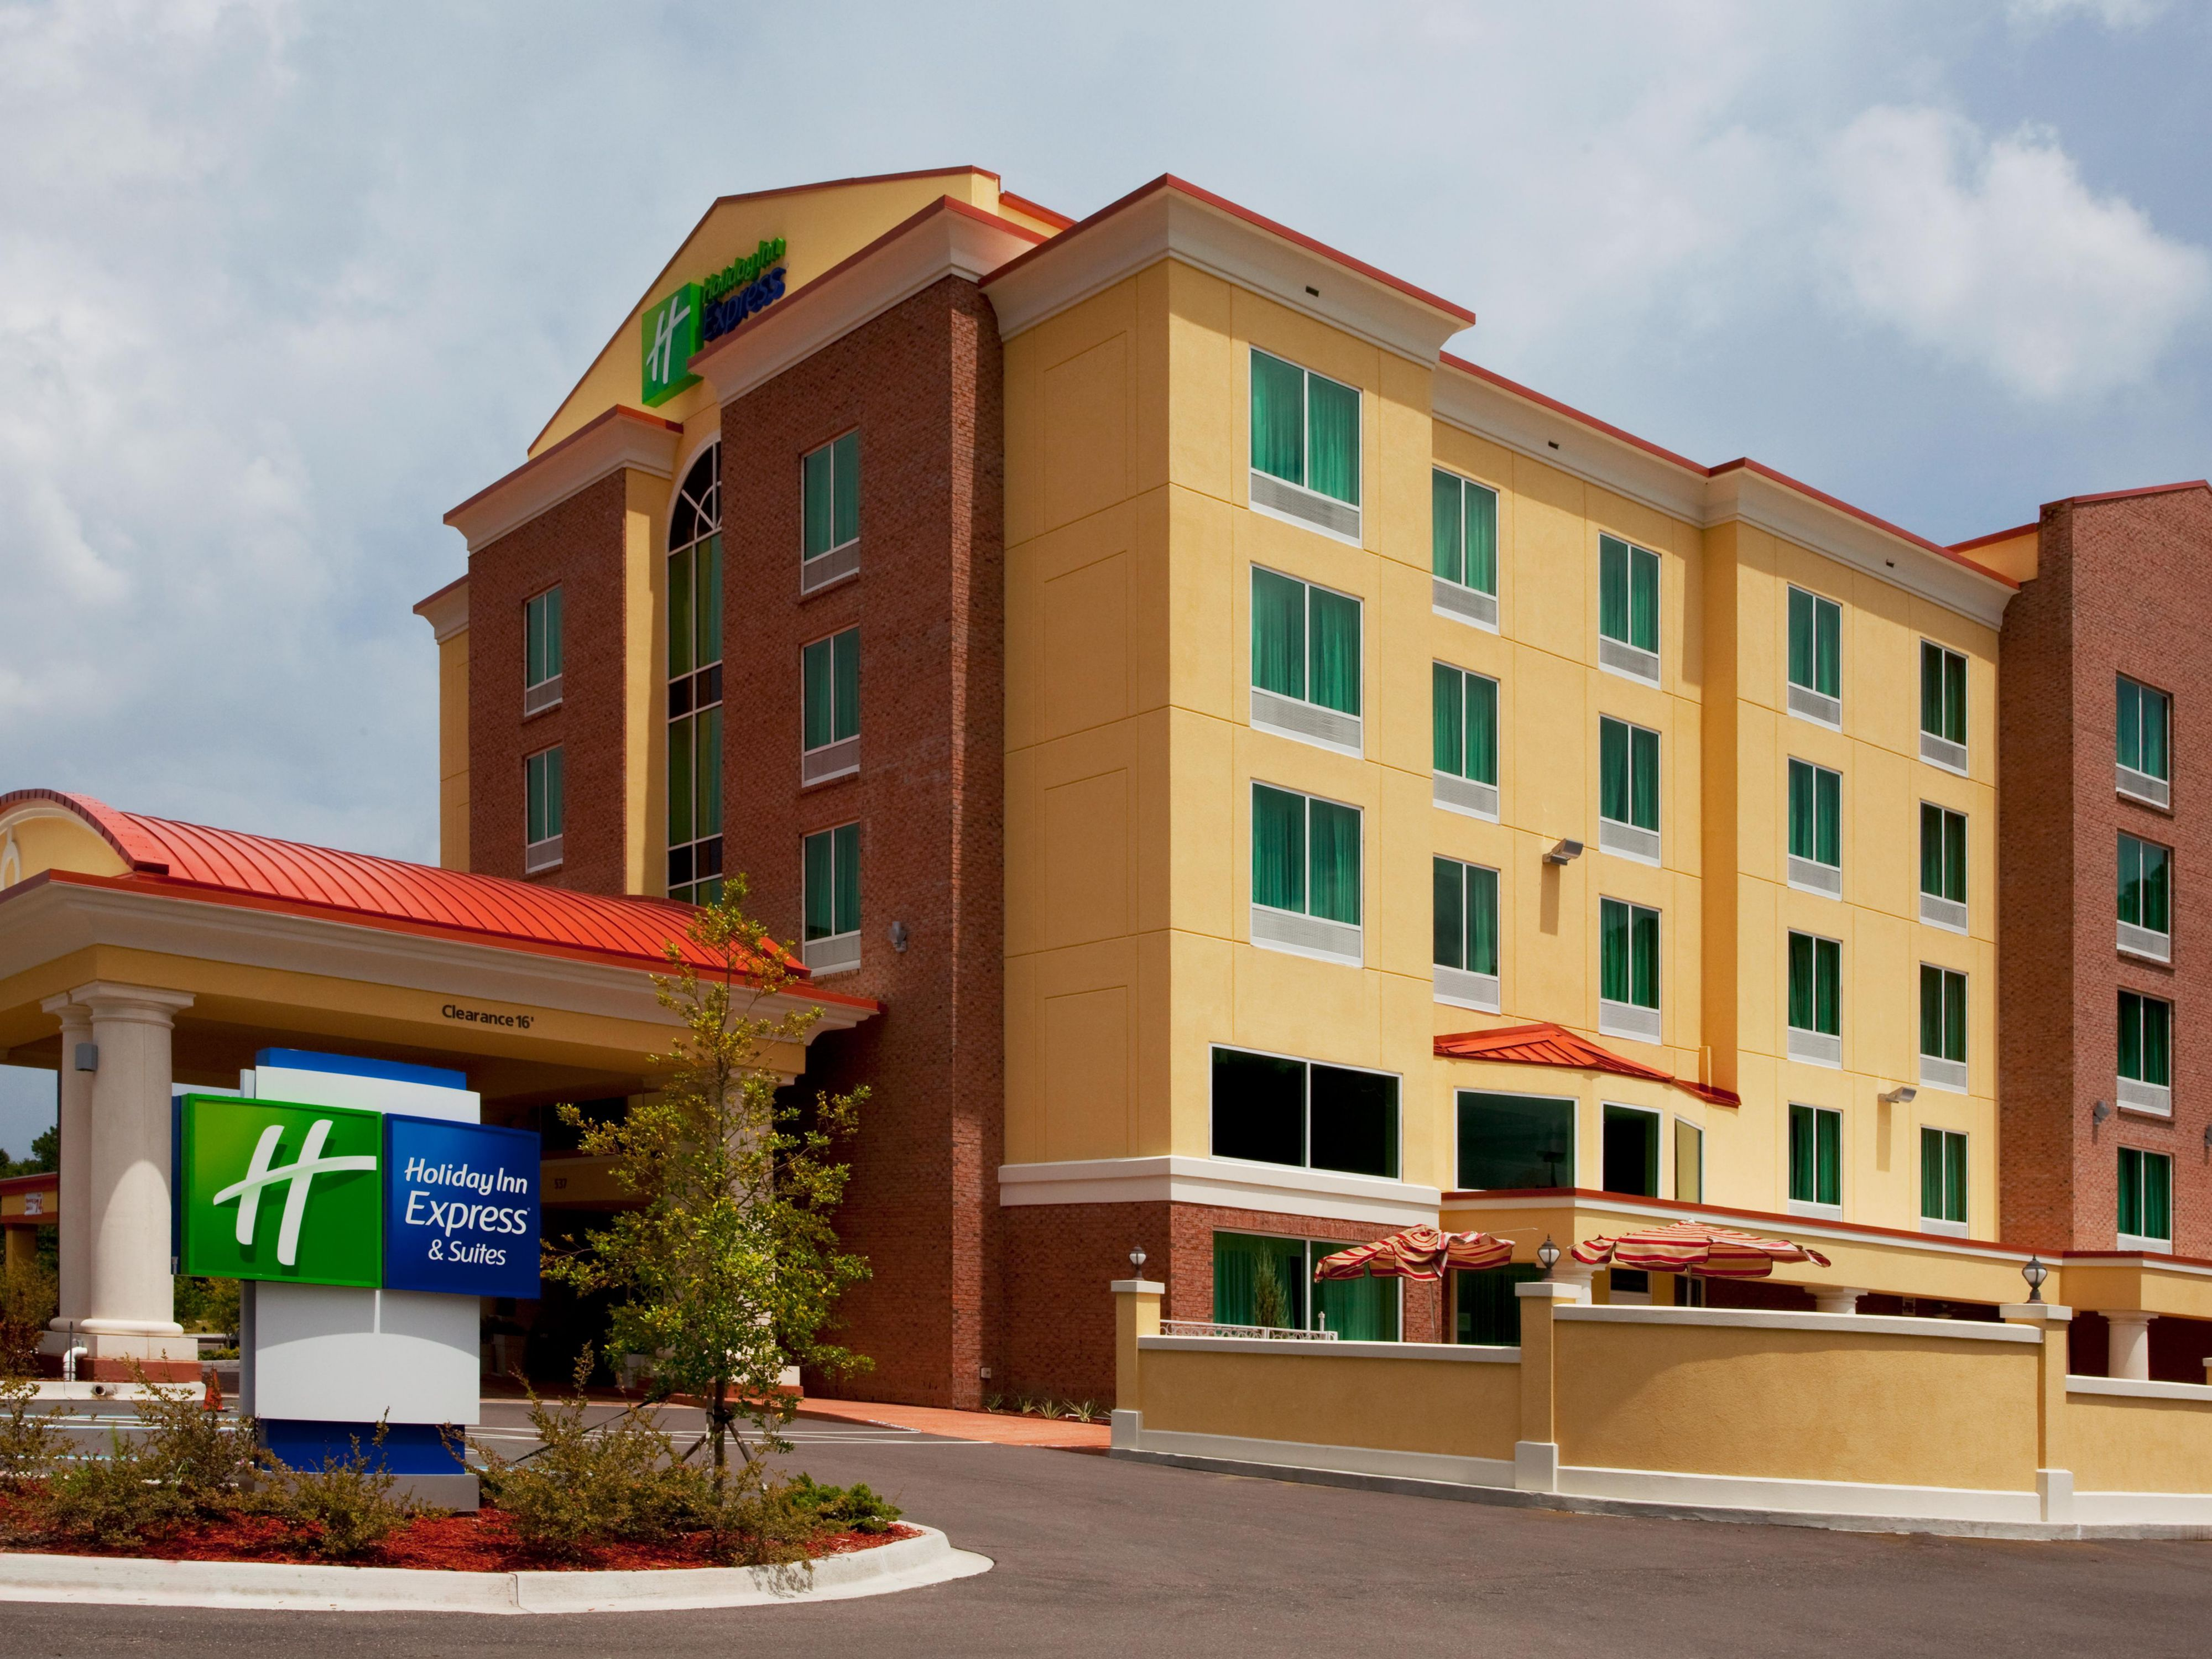 Pet Friendly Hotel Jacksonville Holiday Inn Express Suites Chaffee Jacksonville West